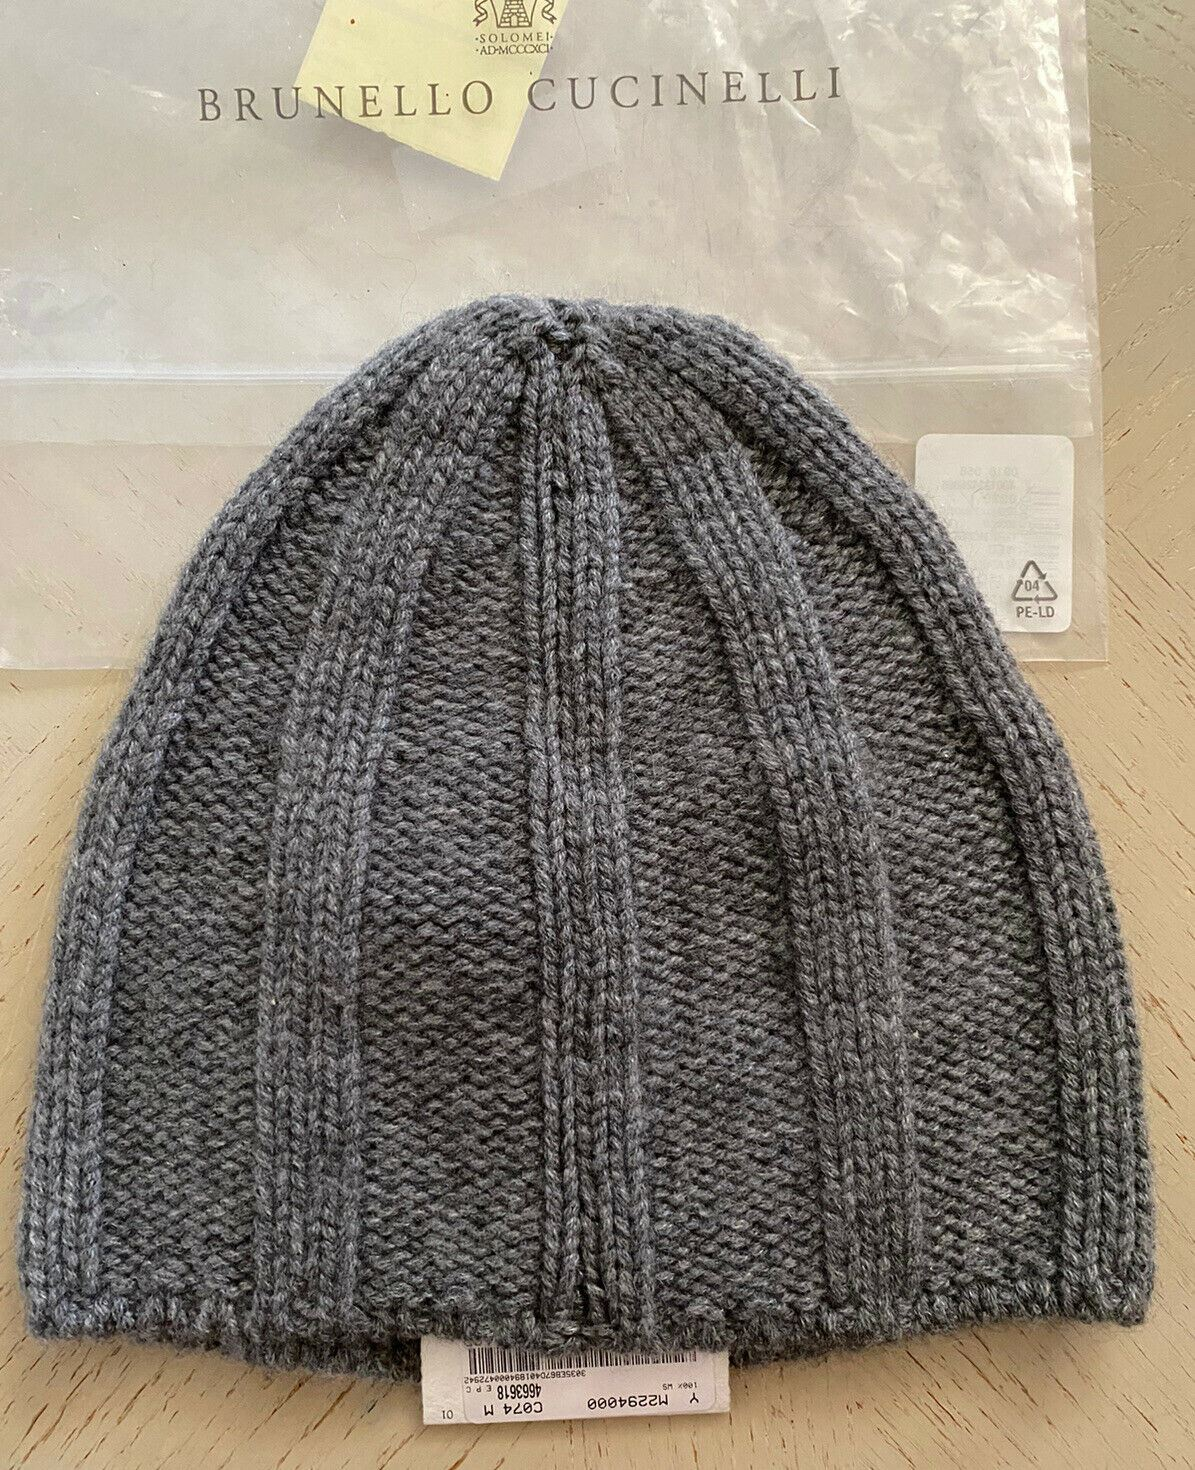 NWT $410 Brunello Cucinelli Men Rib-Knit Cashmere Beanie Hat Gray M Italy